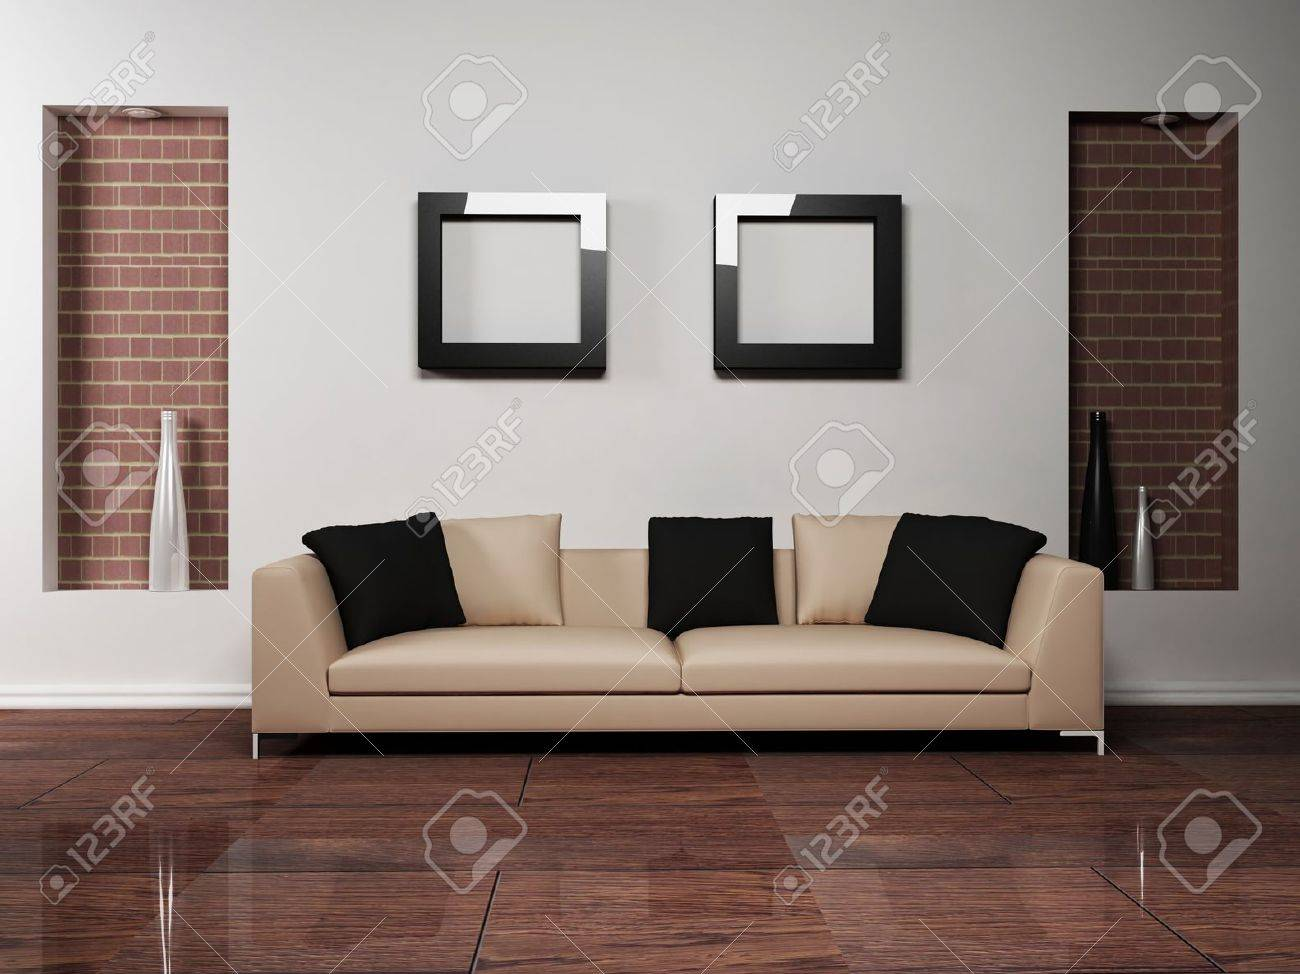 modern interior design of living room with a nice sofa stock photo modern interior design of living room with a nice sofa stock photo 12696603